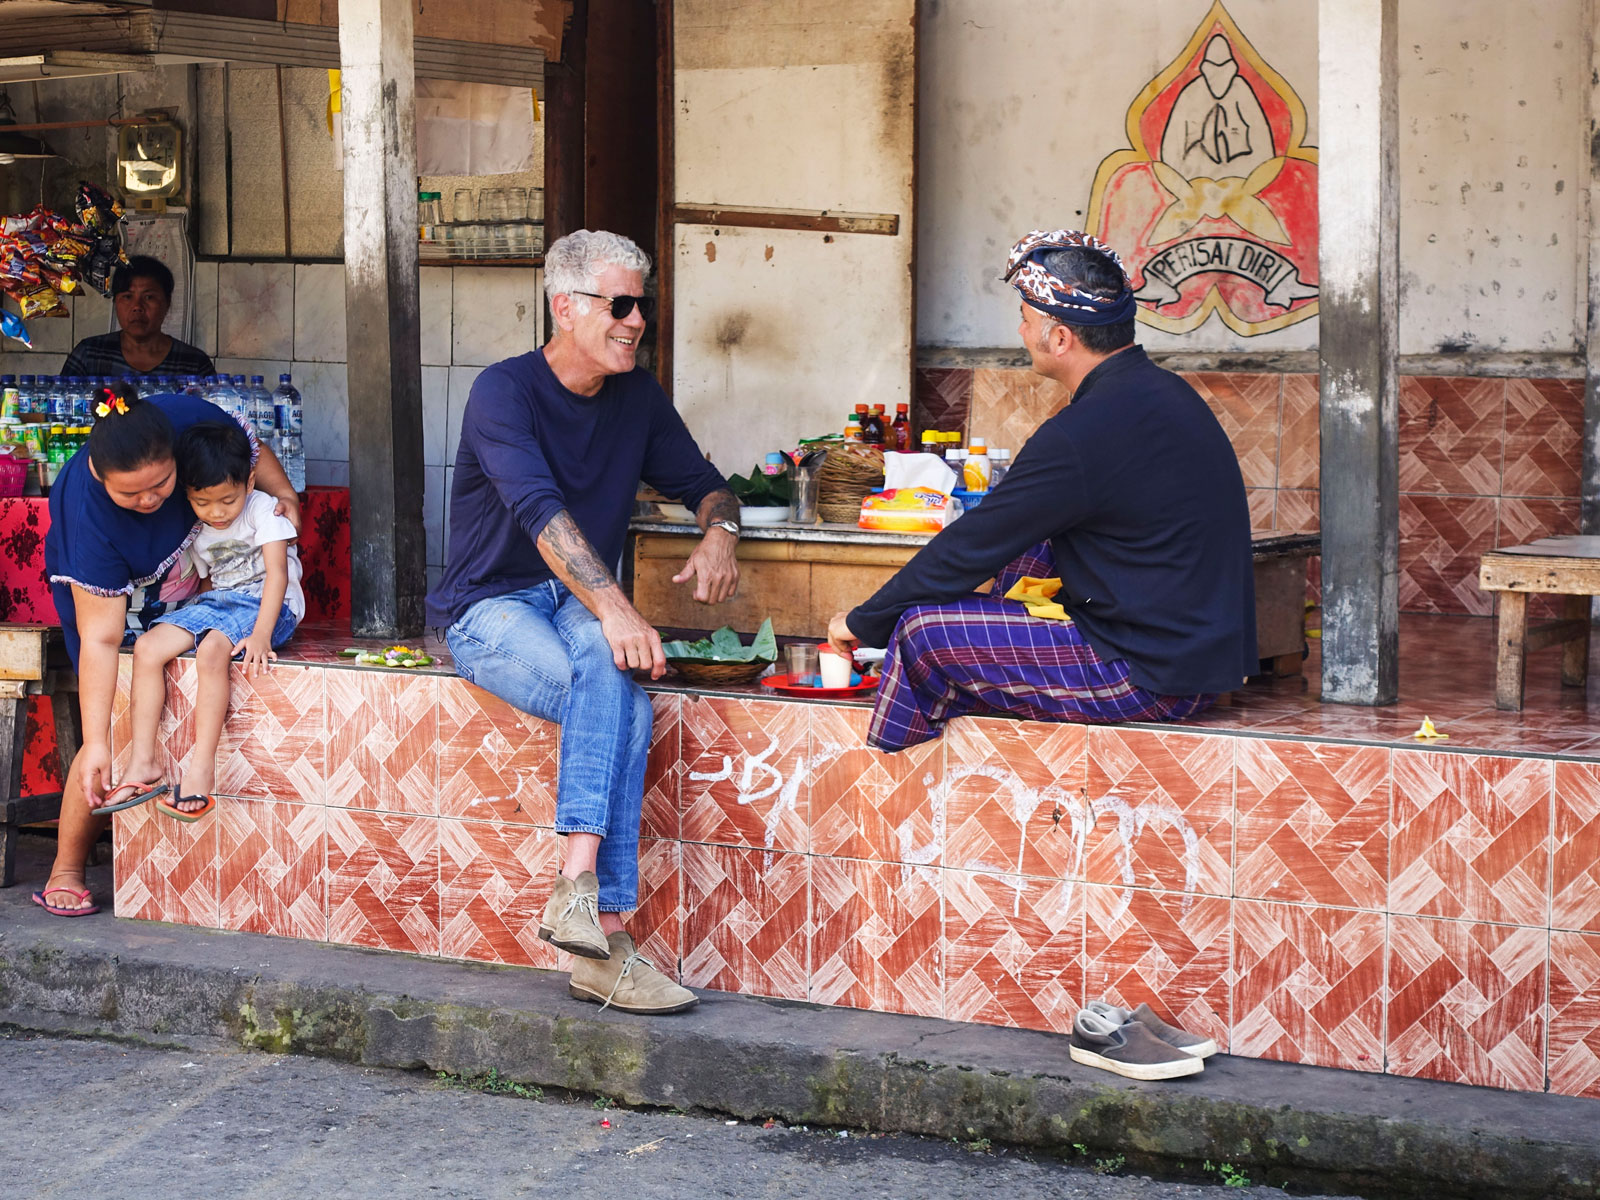 What to Expect from 'Anthony Bourdain Parts Unknown' in Indonesia